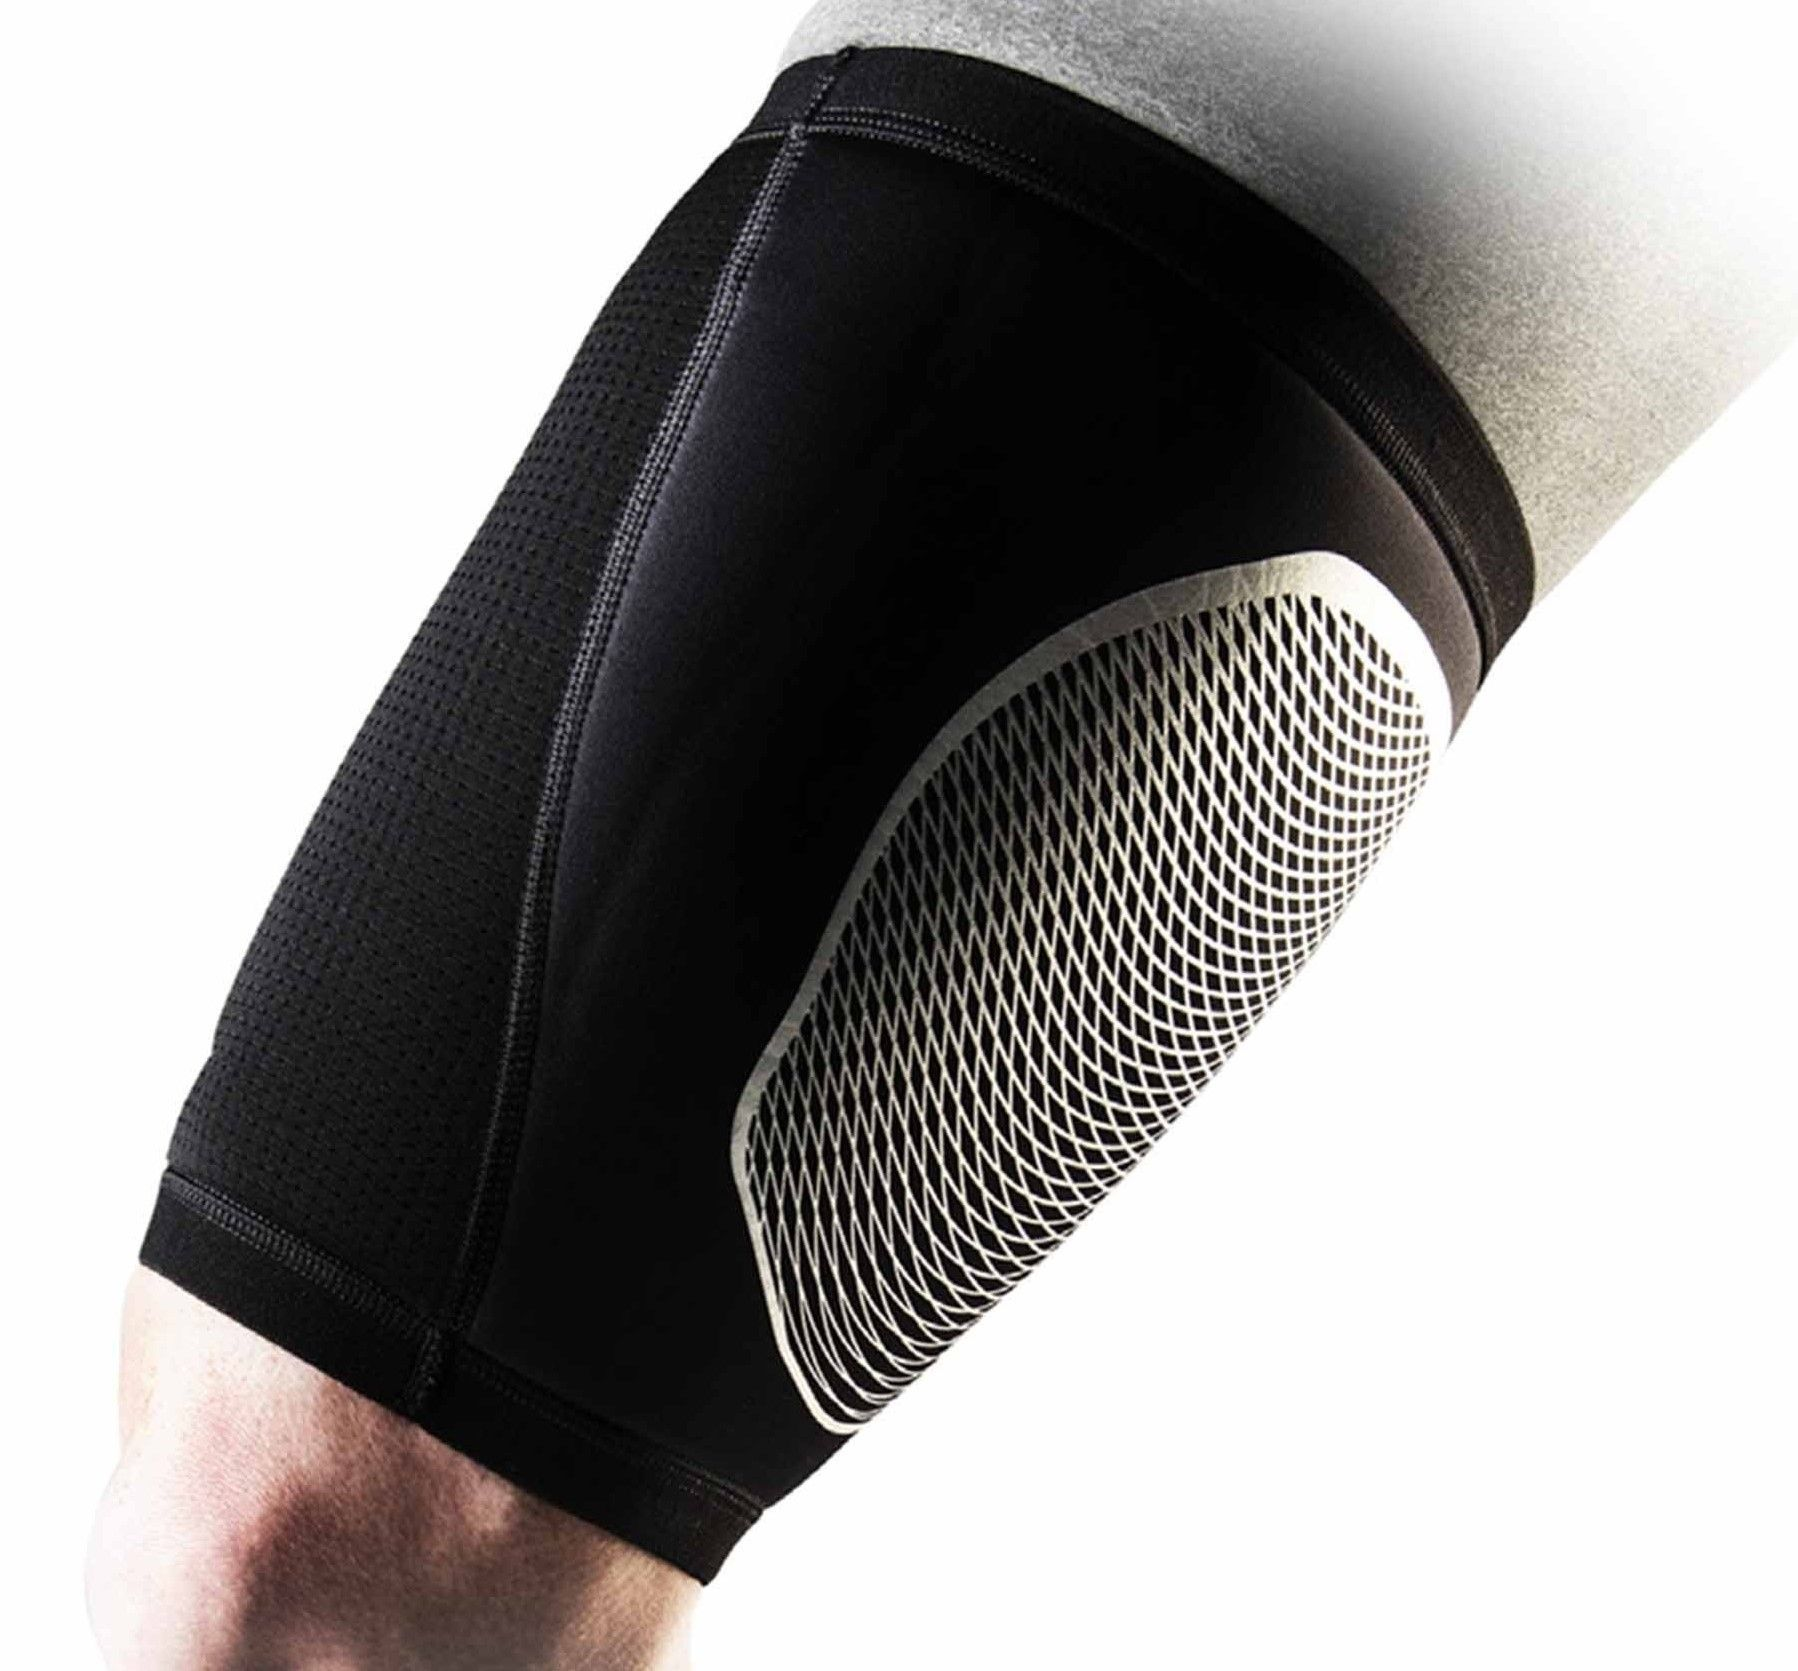 Nike Pro Combat Hyperstrong Thigh Sleeve in Black Nike